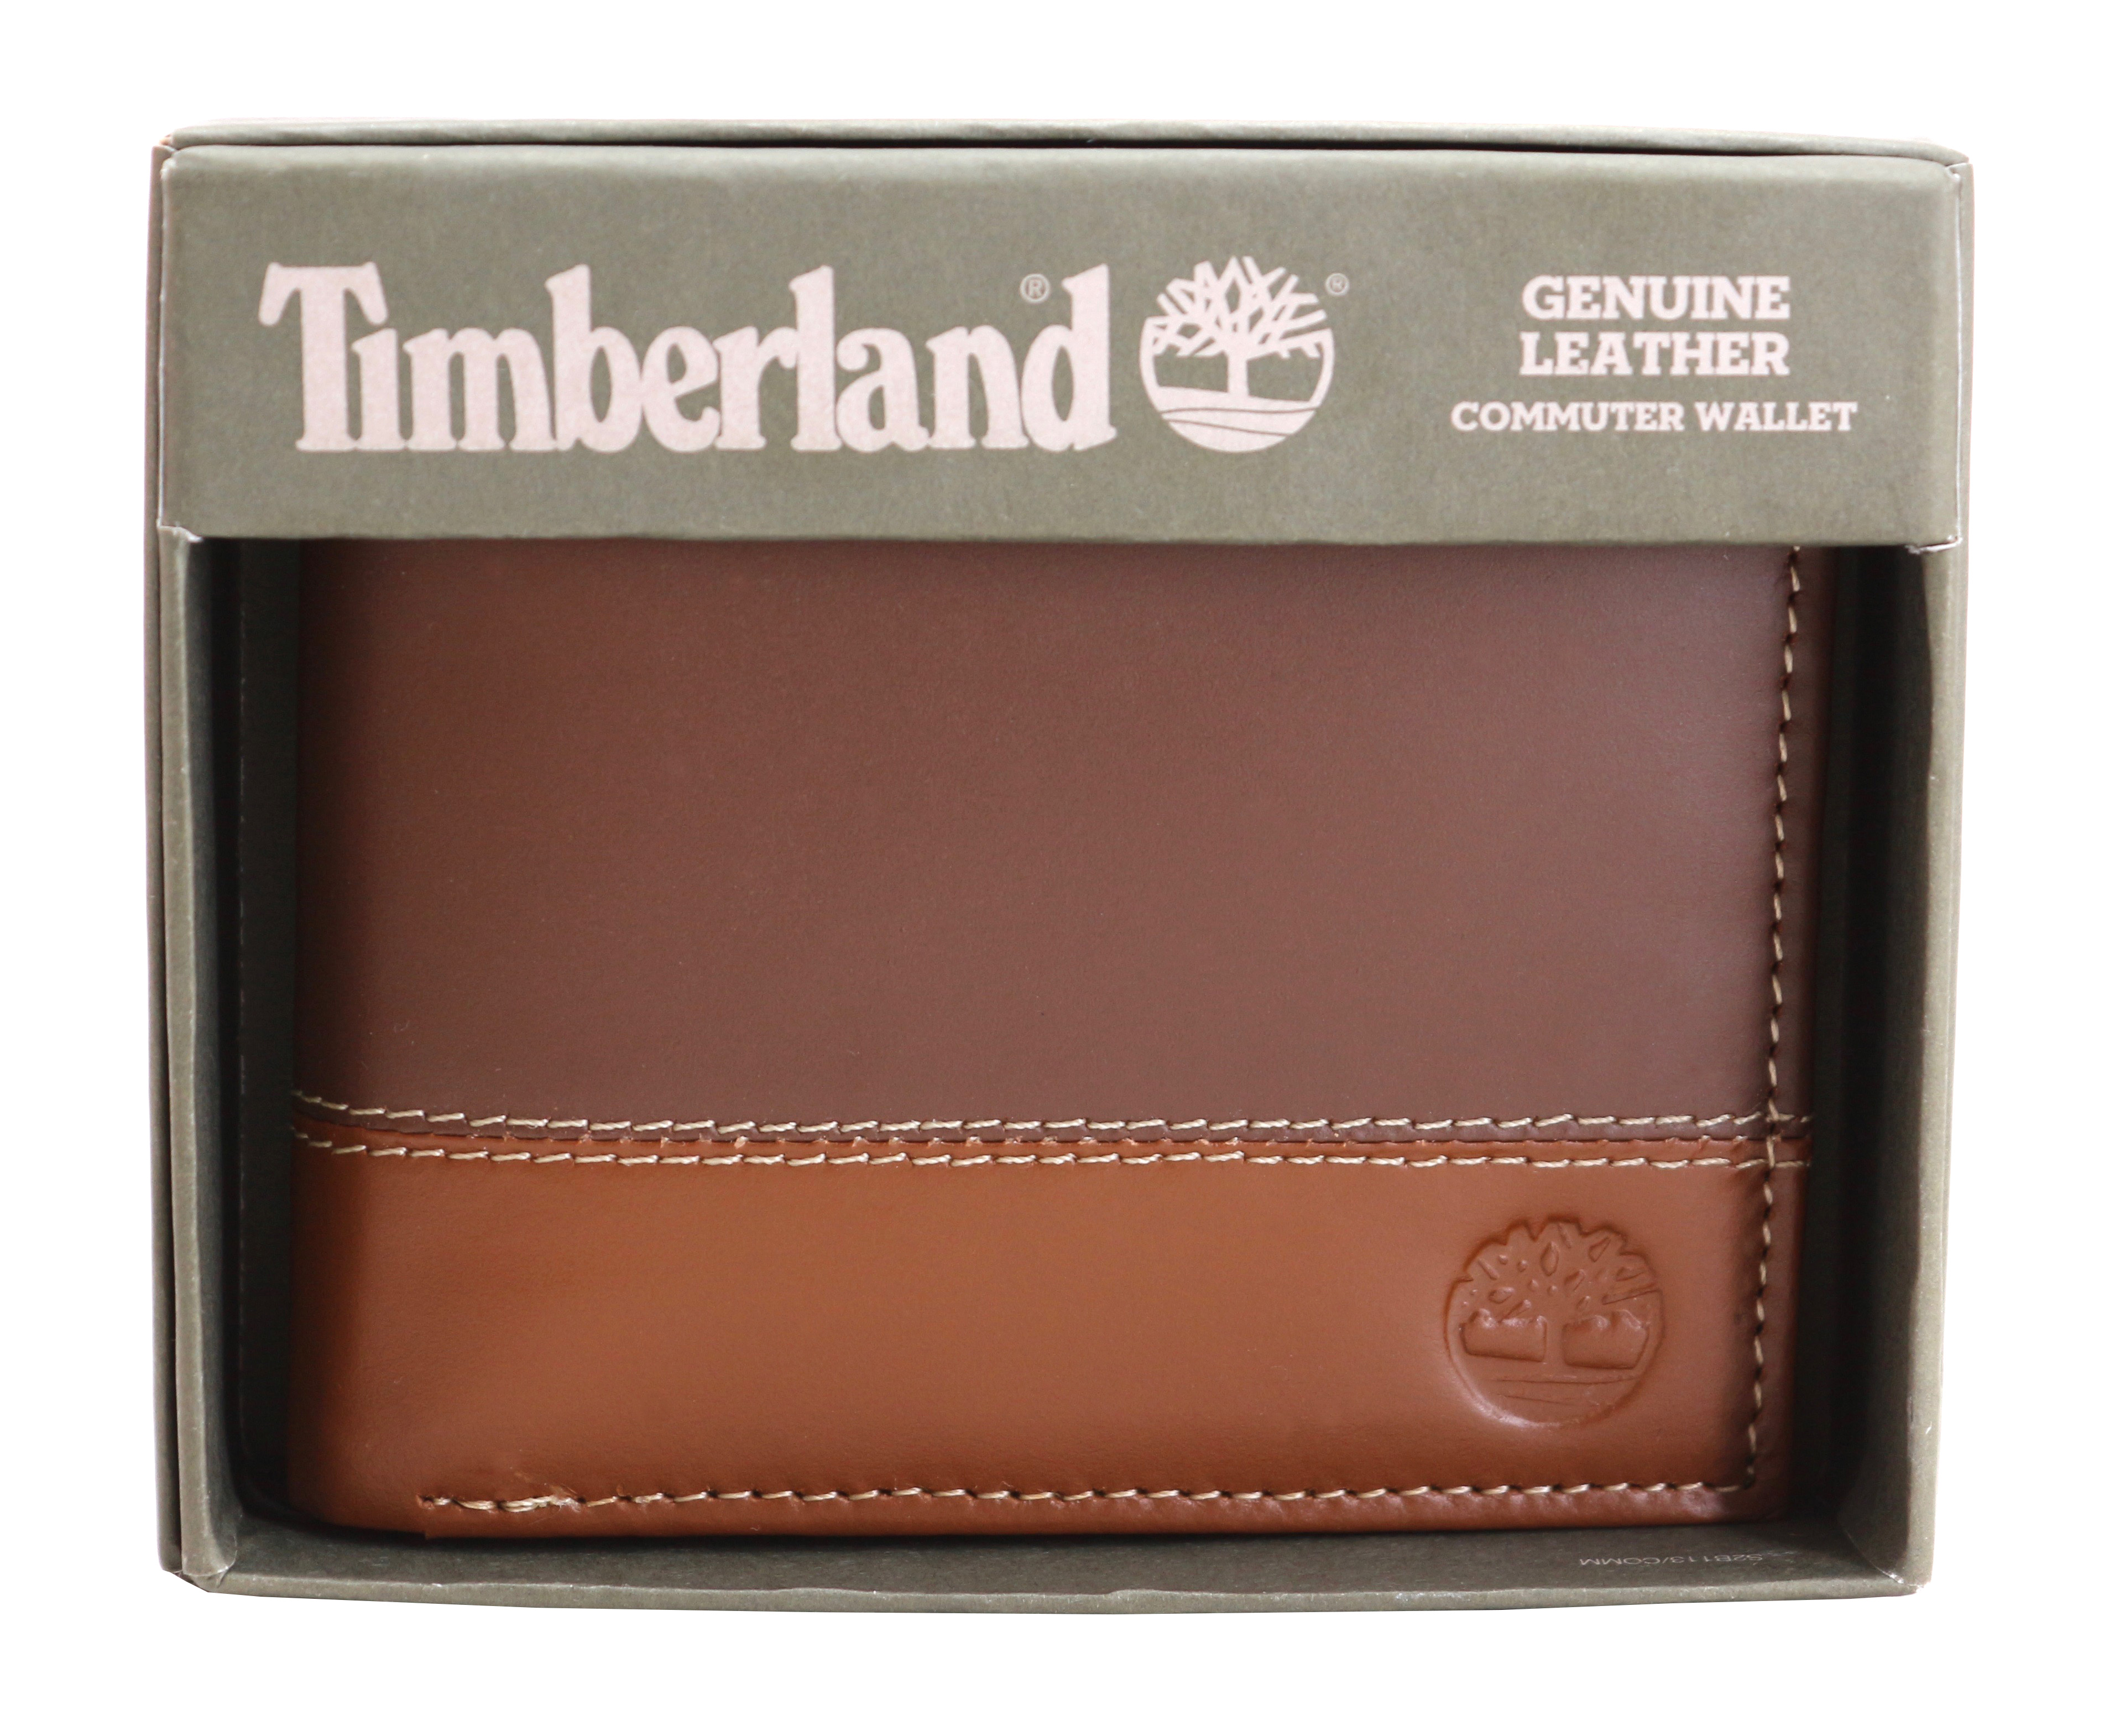 Timberland-Men-039-s-Genuine-Two-Tone-Leather-Credit-Card-Billfold-Commuter-Wallet thumbnail 44